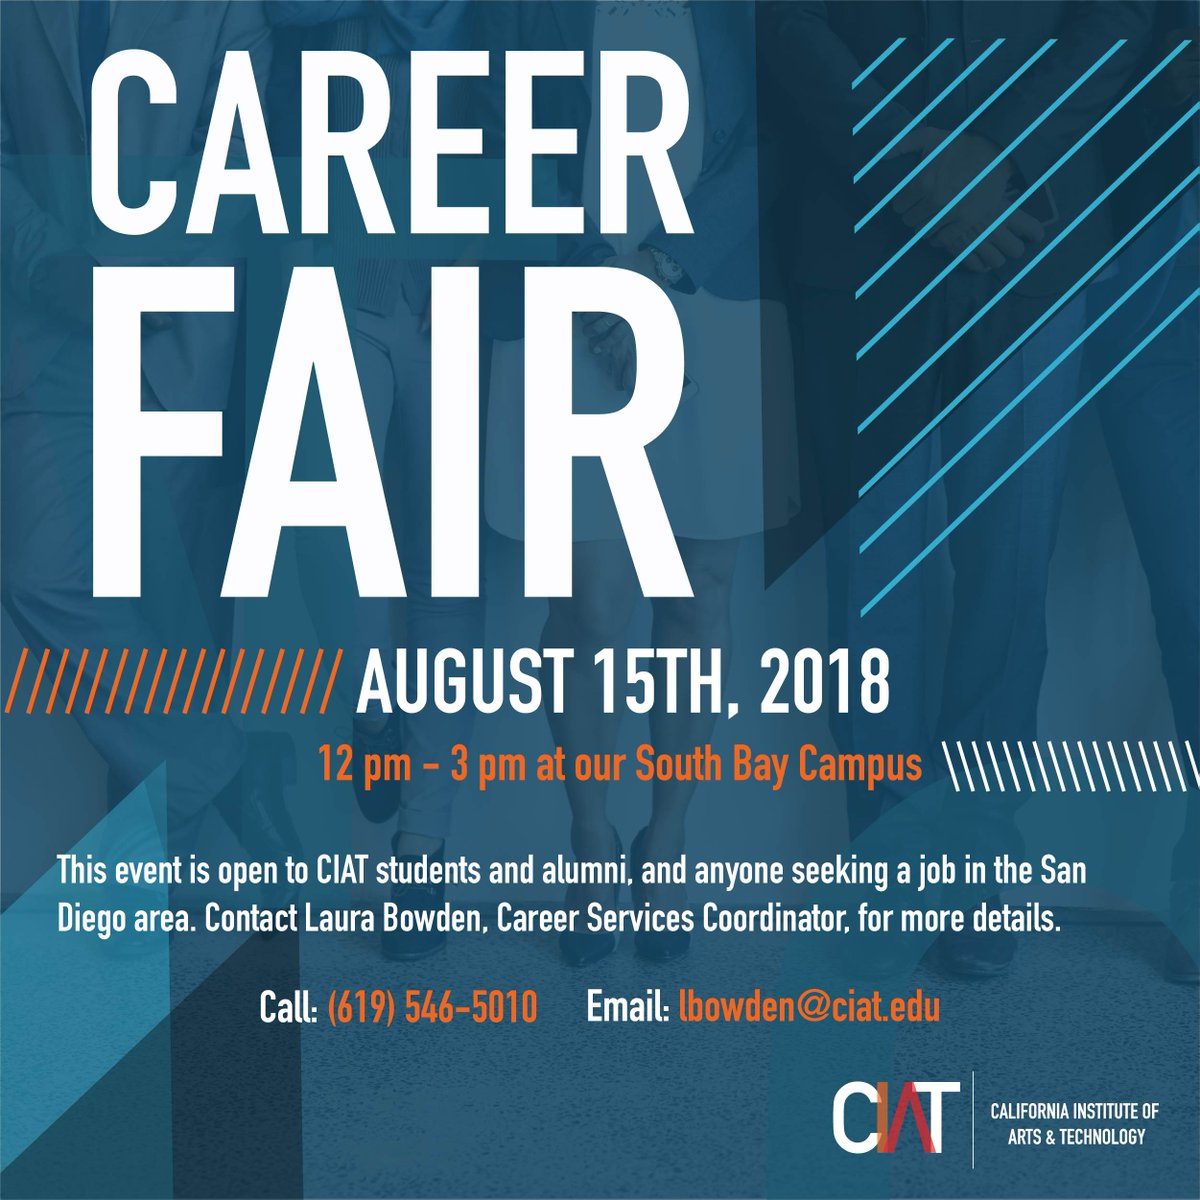 Join us this Wednesday for a Career Fair event at our South Bay Campus! Meet with local employers and discover new opportunities at this exciting event! Make sure you bring copies of your resume. See you there! #gociat #techschool #careersintech #networkingevent #CIAT<br>http://pic.twitter.com/i9huaVeyoC